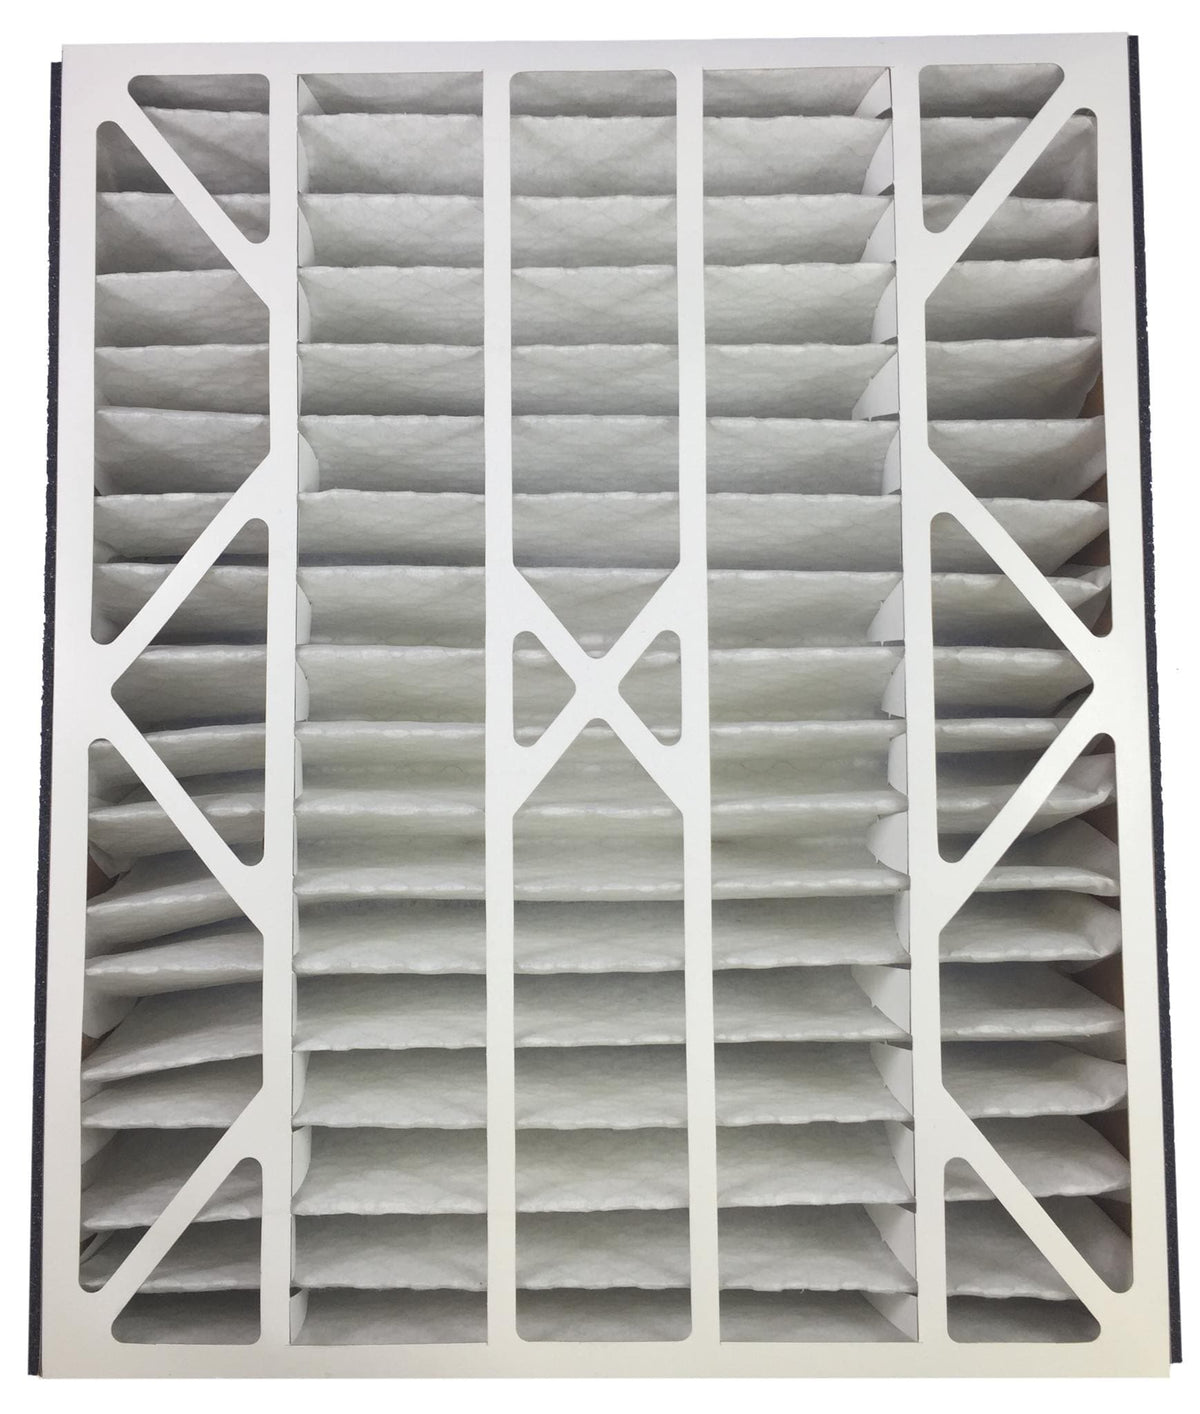 Atomic 255649-102 Trion Air Bear MERV 8 Compatible Replacement Filter - 20x25x5 - 2 Pack